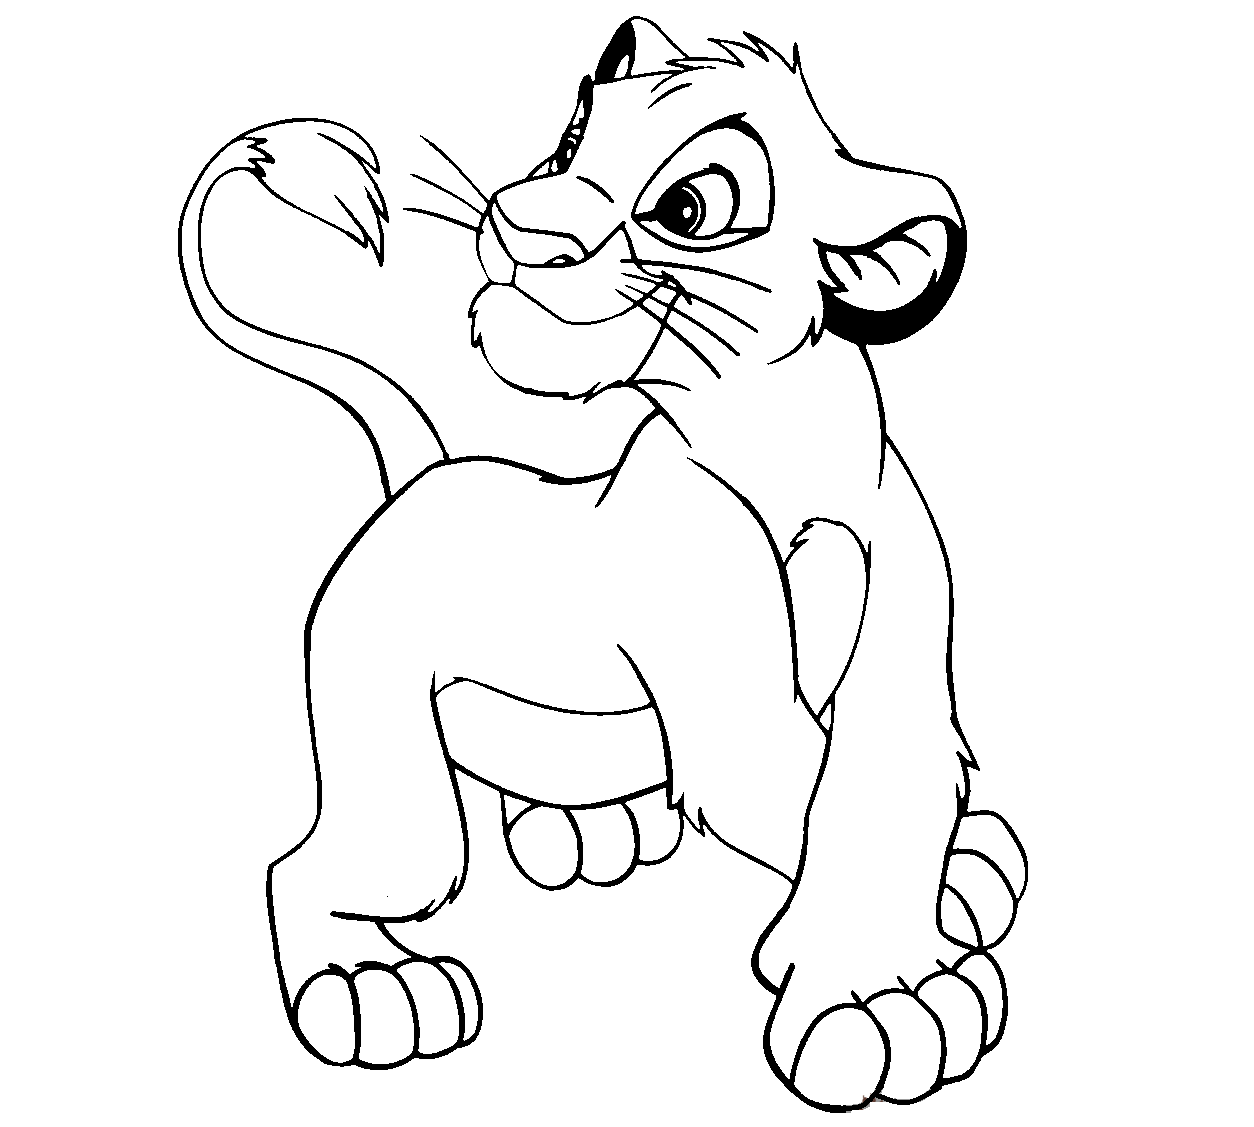 free colouring pages lion king lion king coloring pages best coloring pages for kids colouring free lion king pages